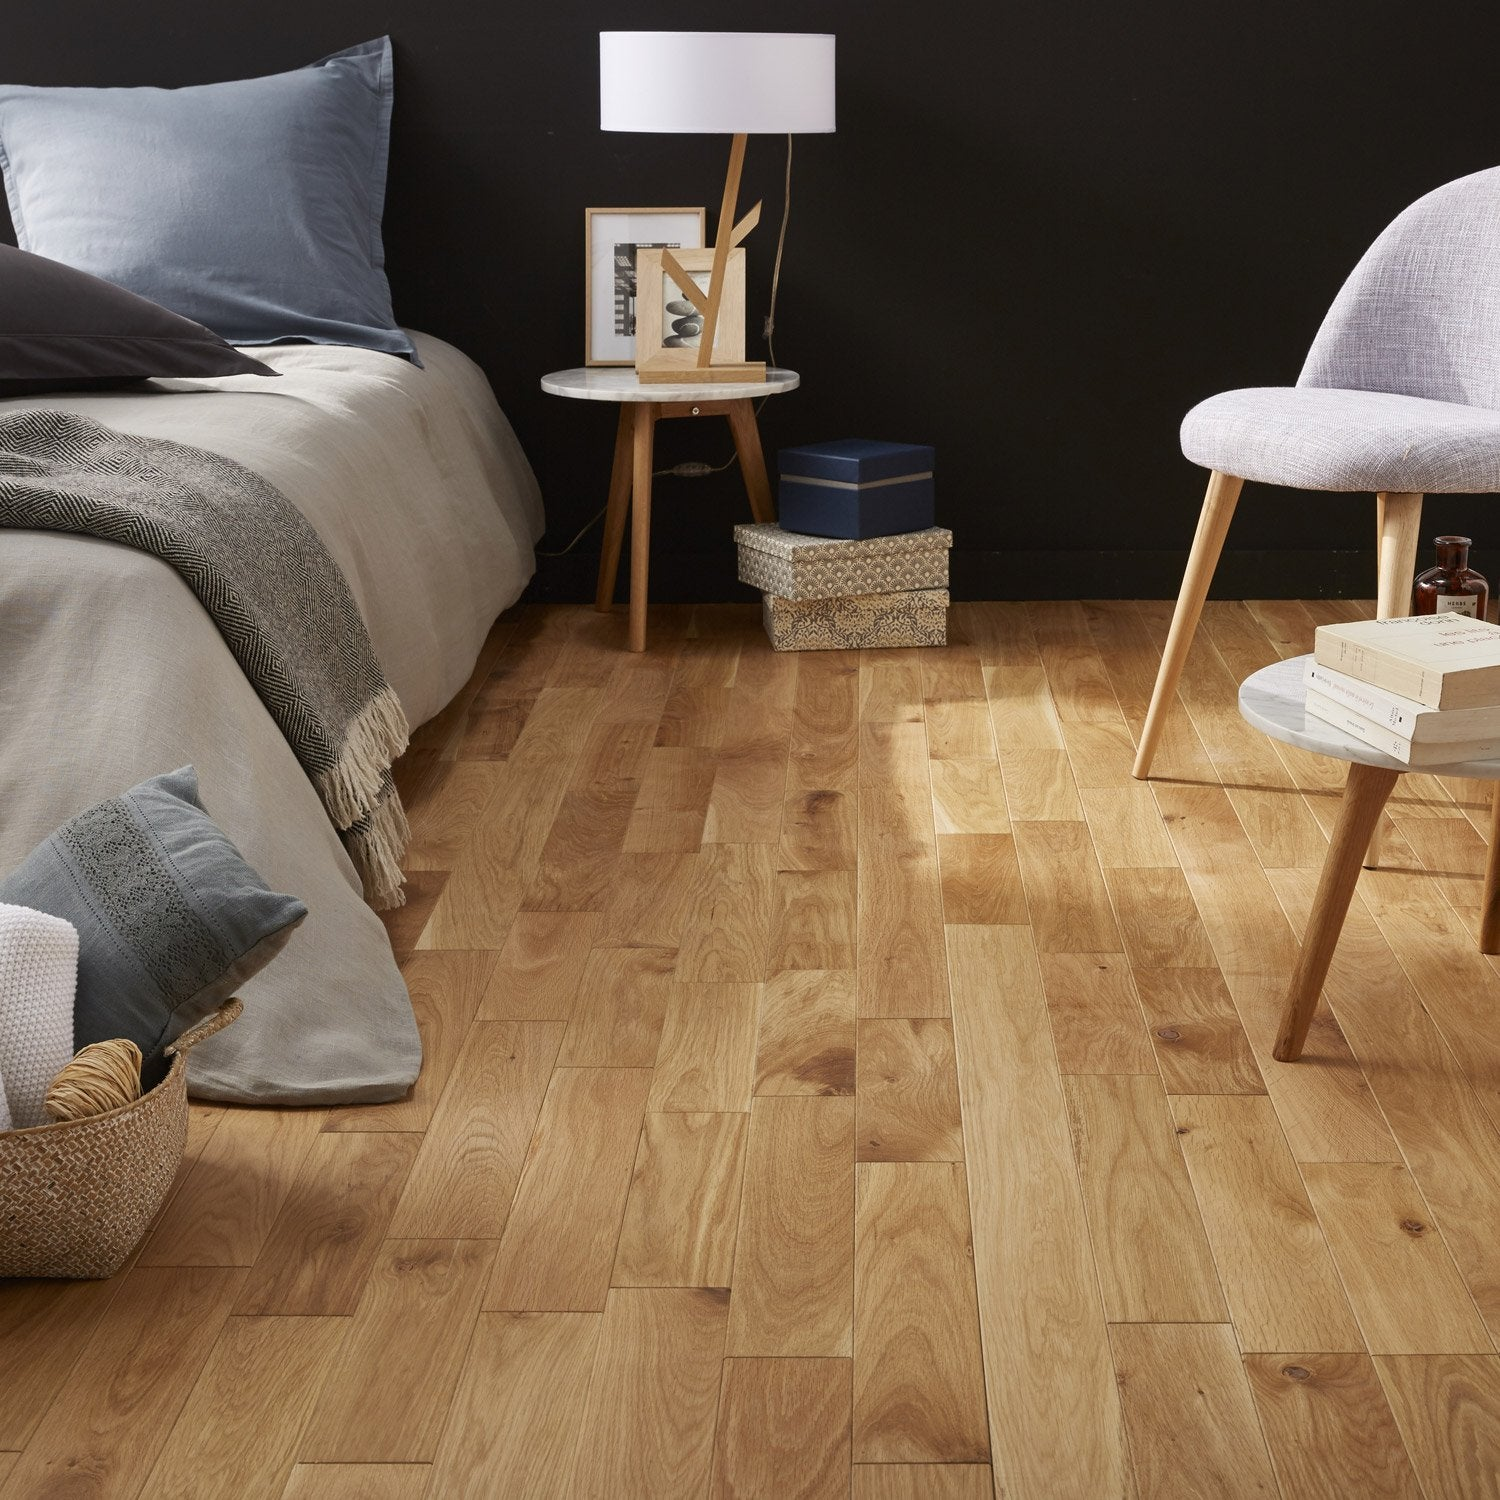 parquet massif ch ne blond huil s artens massif leroy merlin. Black Bedroom Furniture Sets. Home Design Ideas